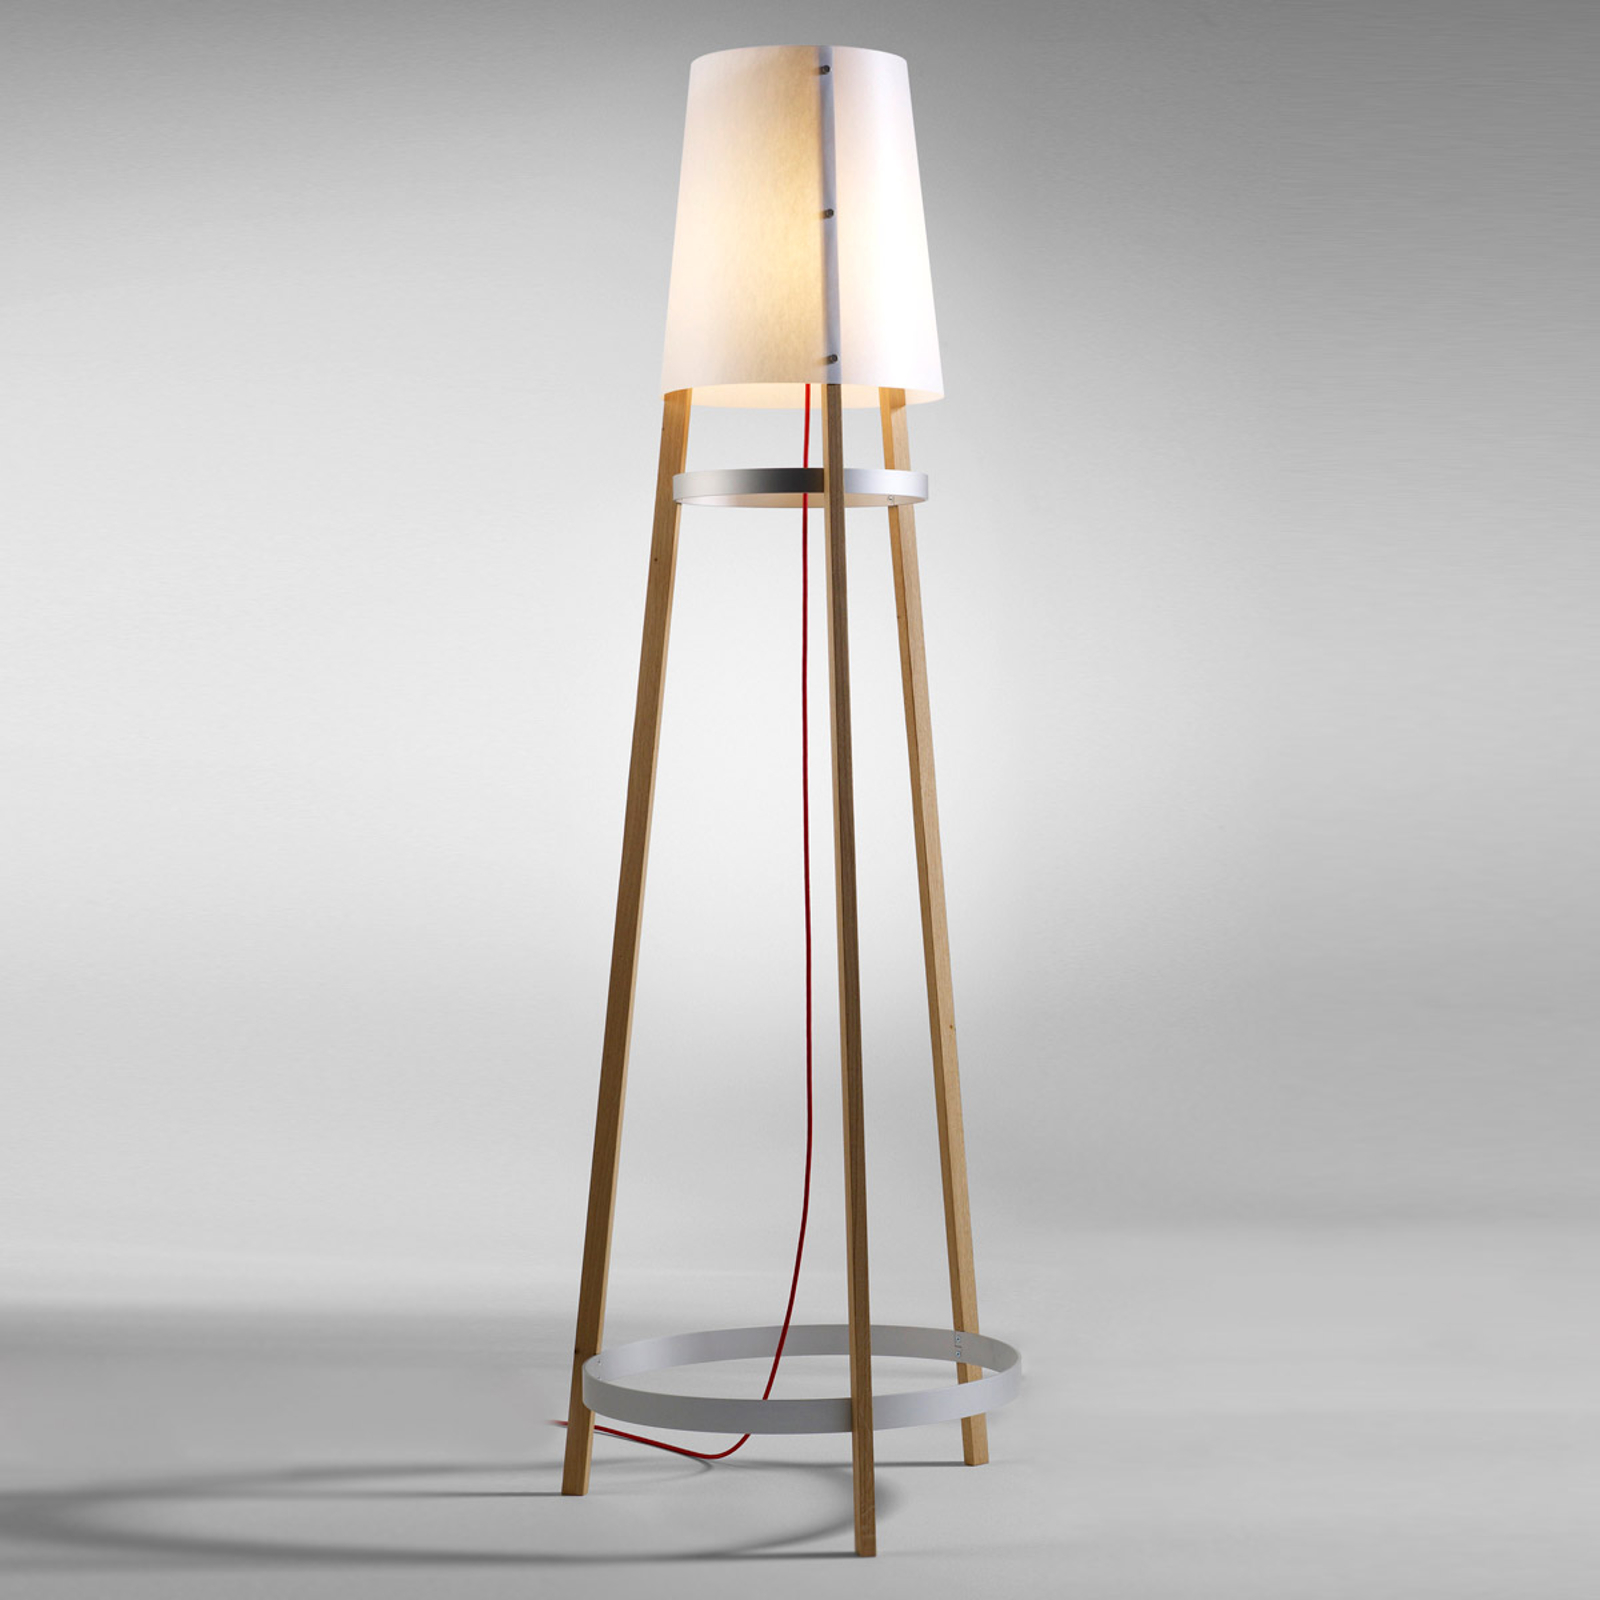 Innovative floor lamp Wai Ting, anthracite cable_2600425_1